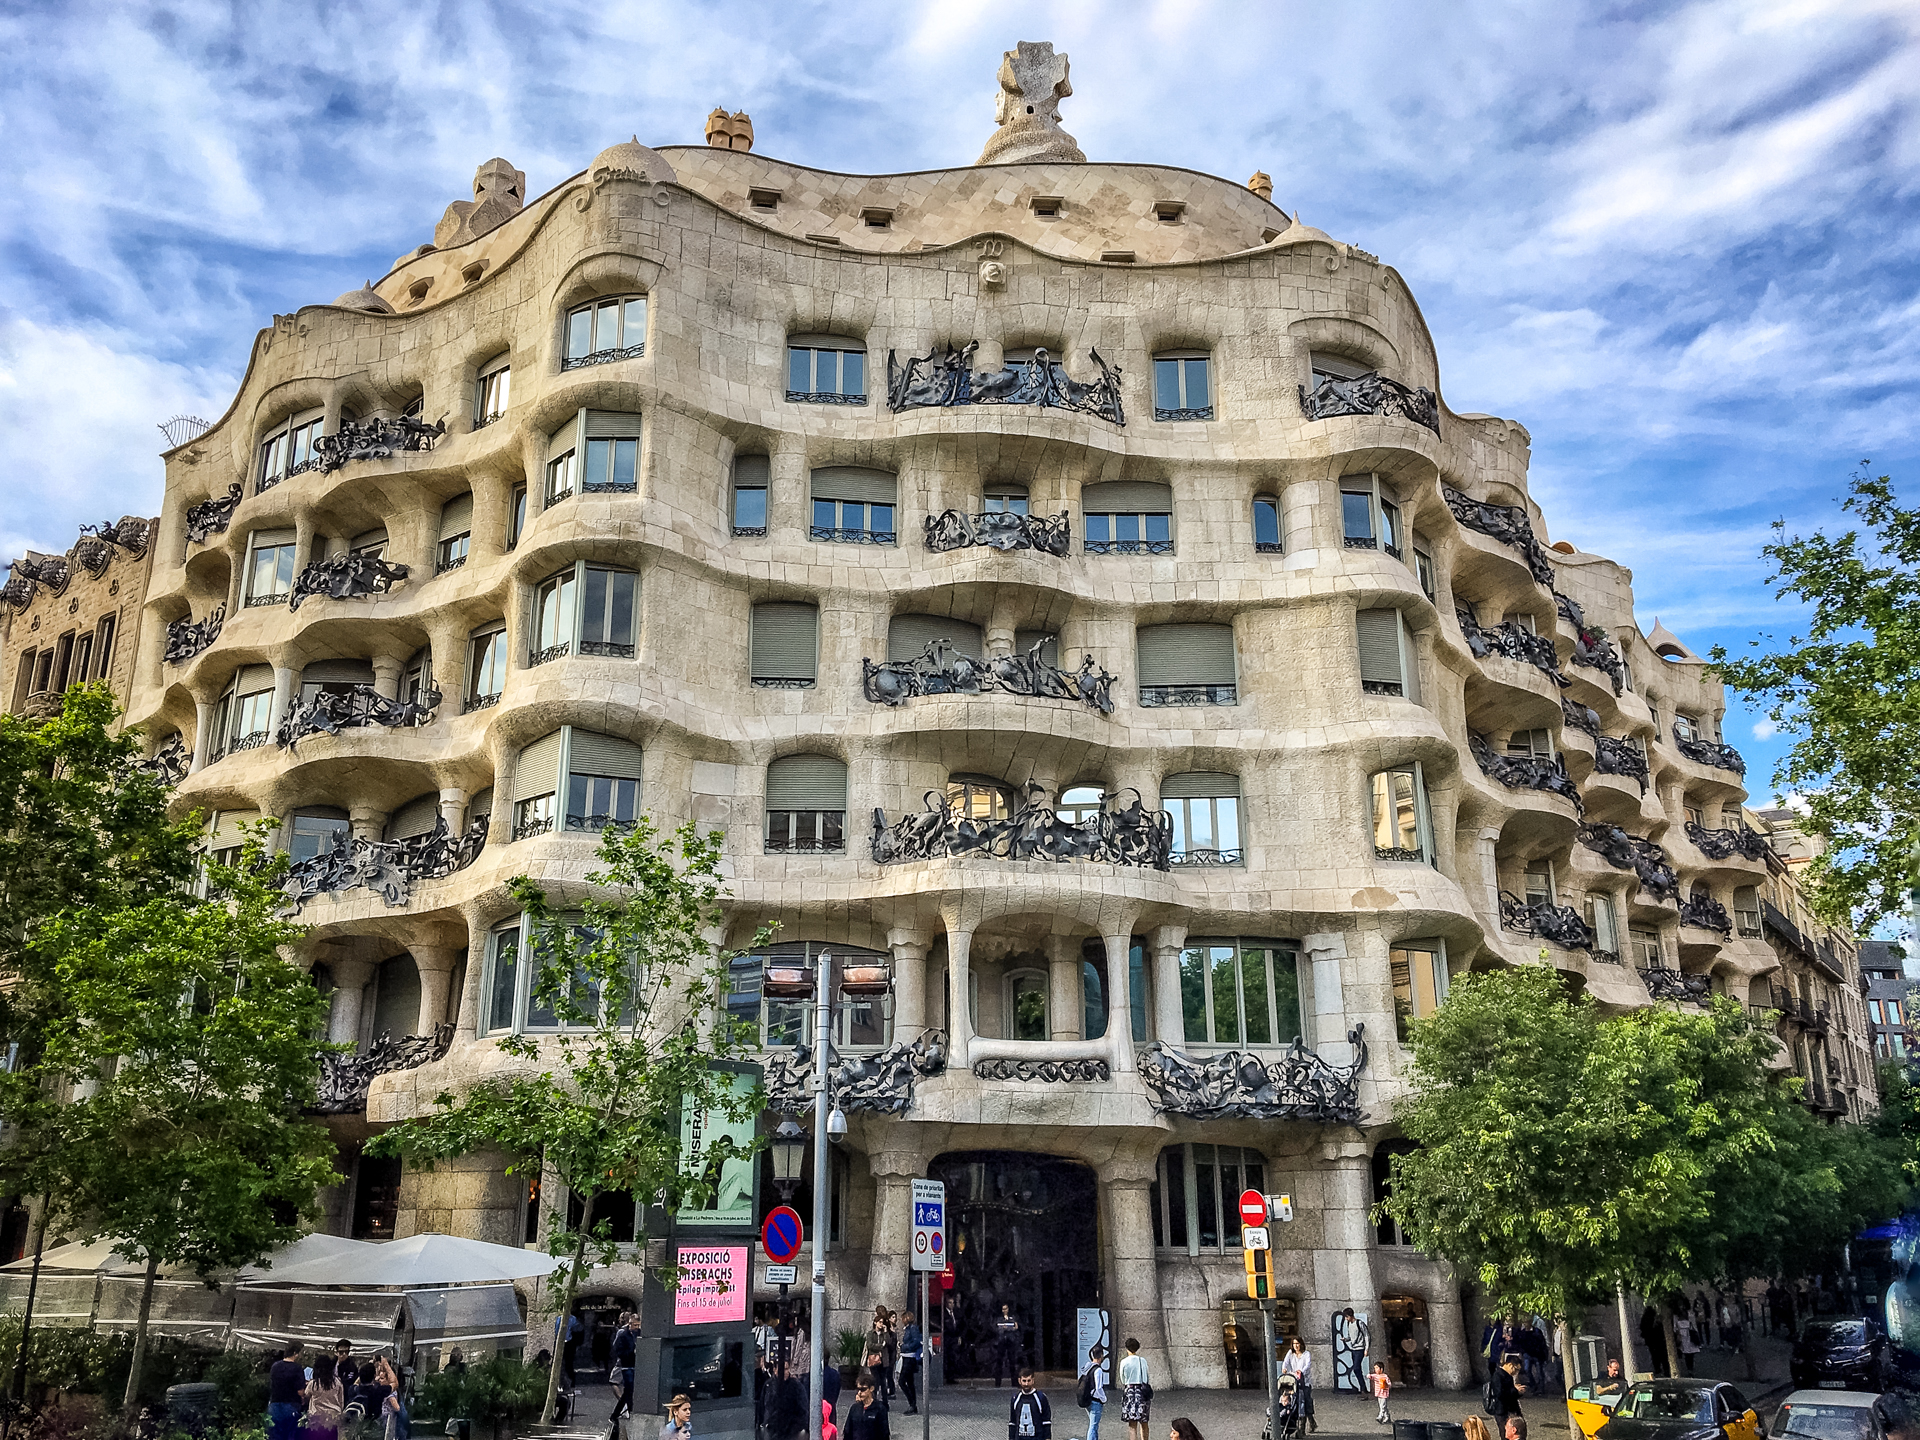 The interesting works of Gaudí.